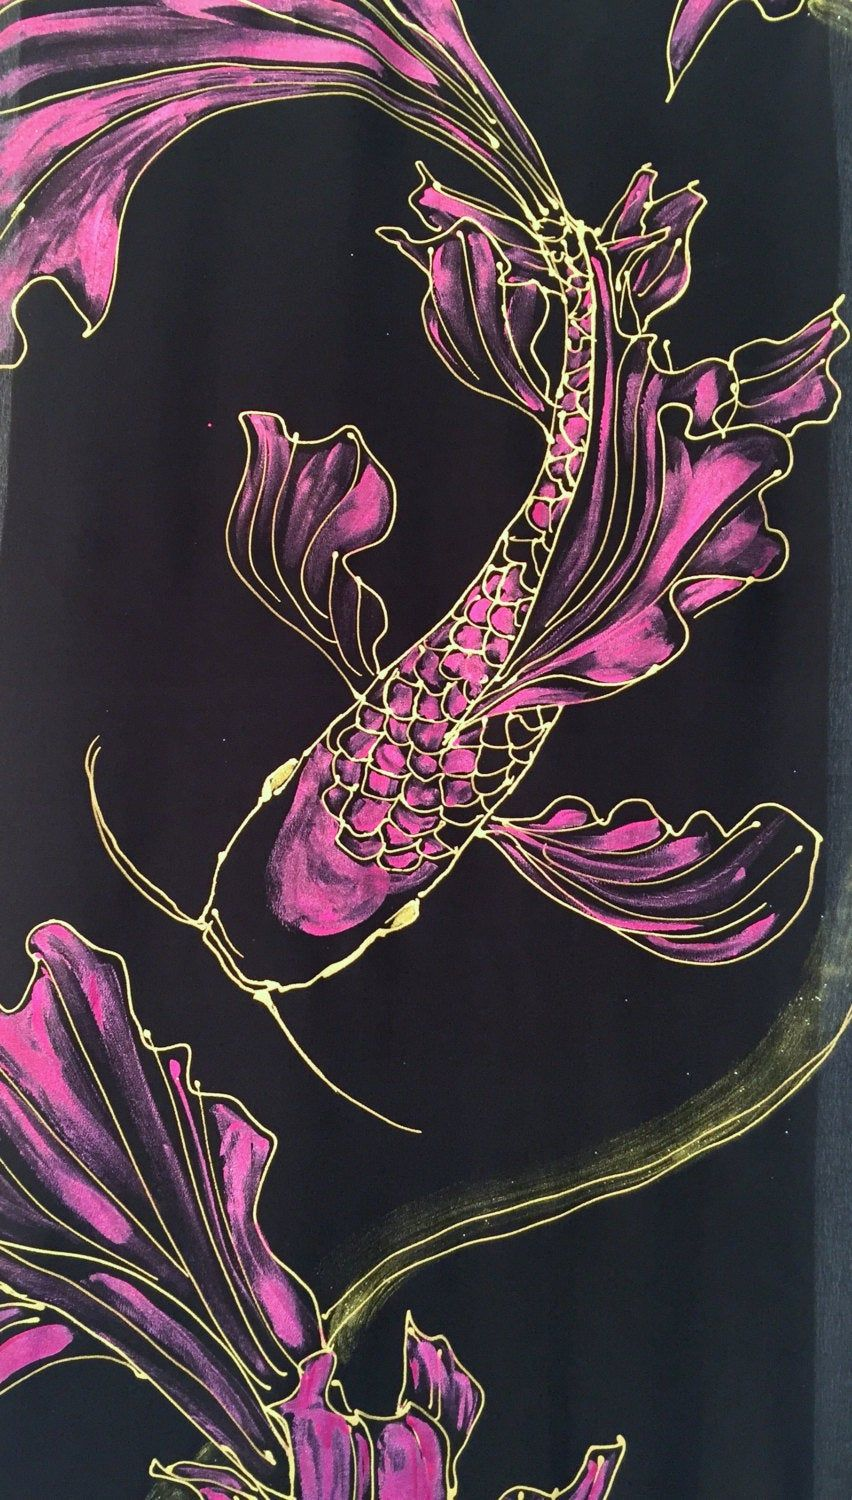 Black Silk Scarf Handpainted, Pink and Gold Koi Scarf, Gift for her, Japanese Scarf, Silk Scarves Takuyo, 14x72 inches. Made to order.